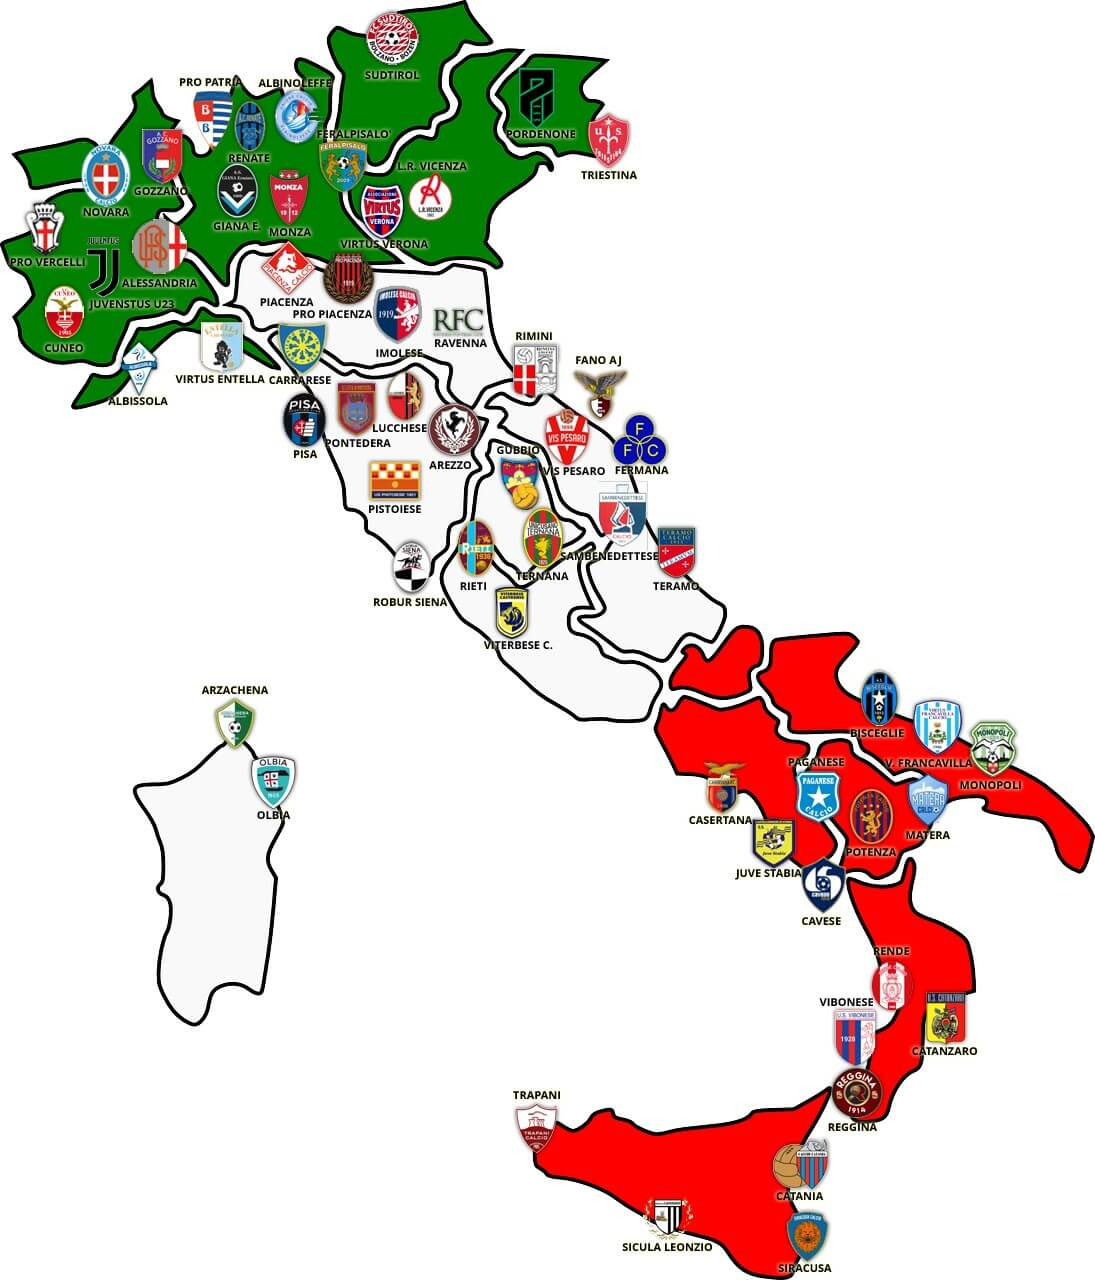 Cartina Italia Catania.Cartina Italia Lega Pro